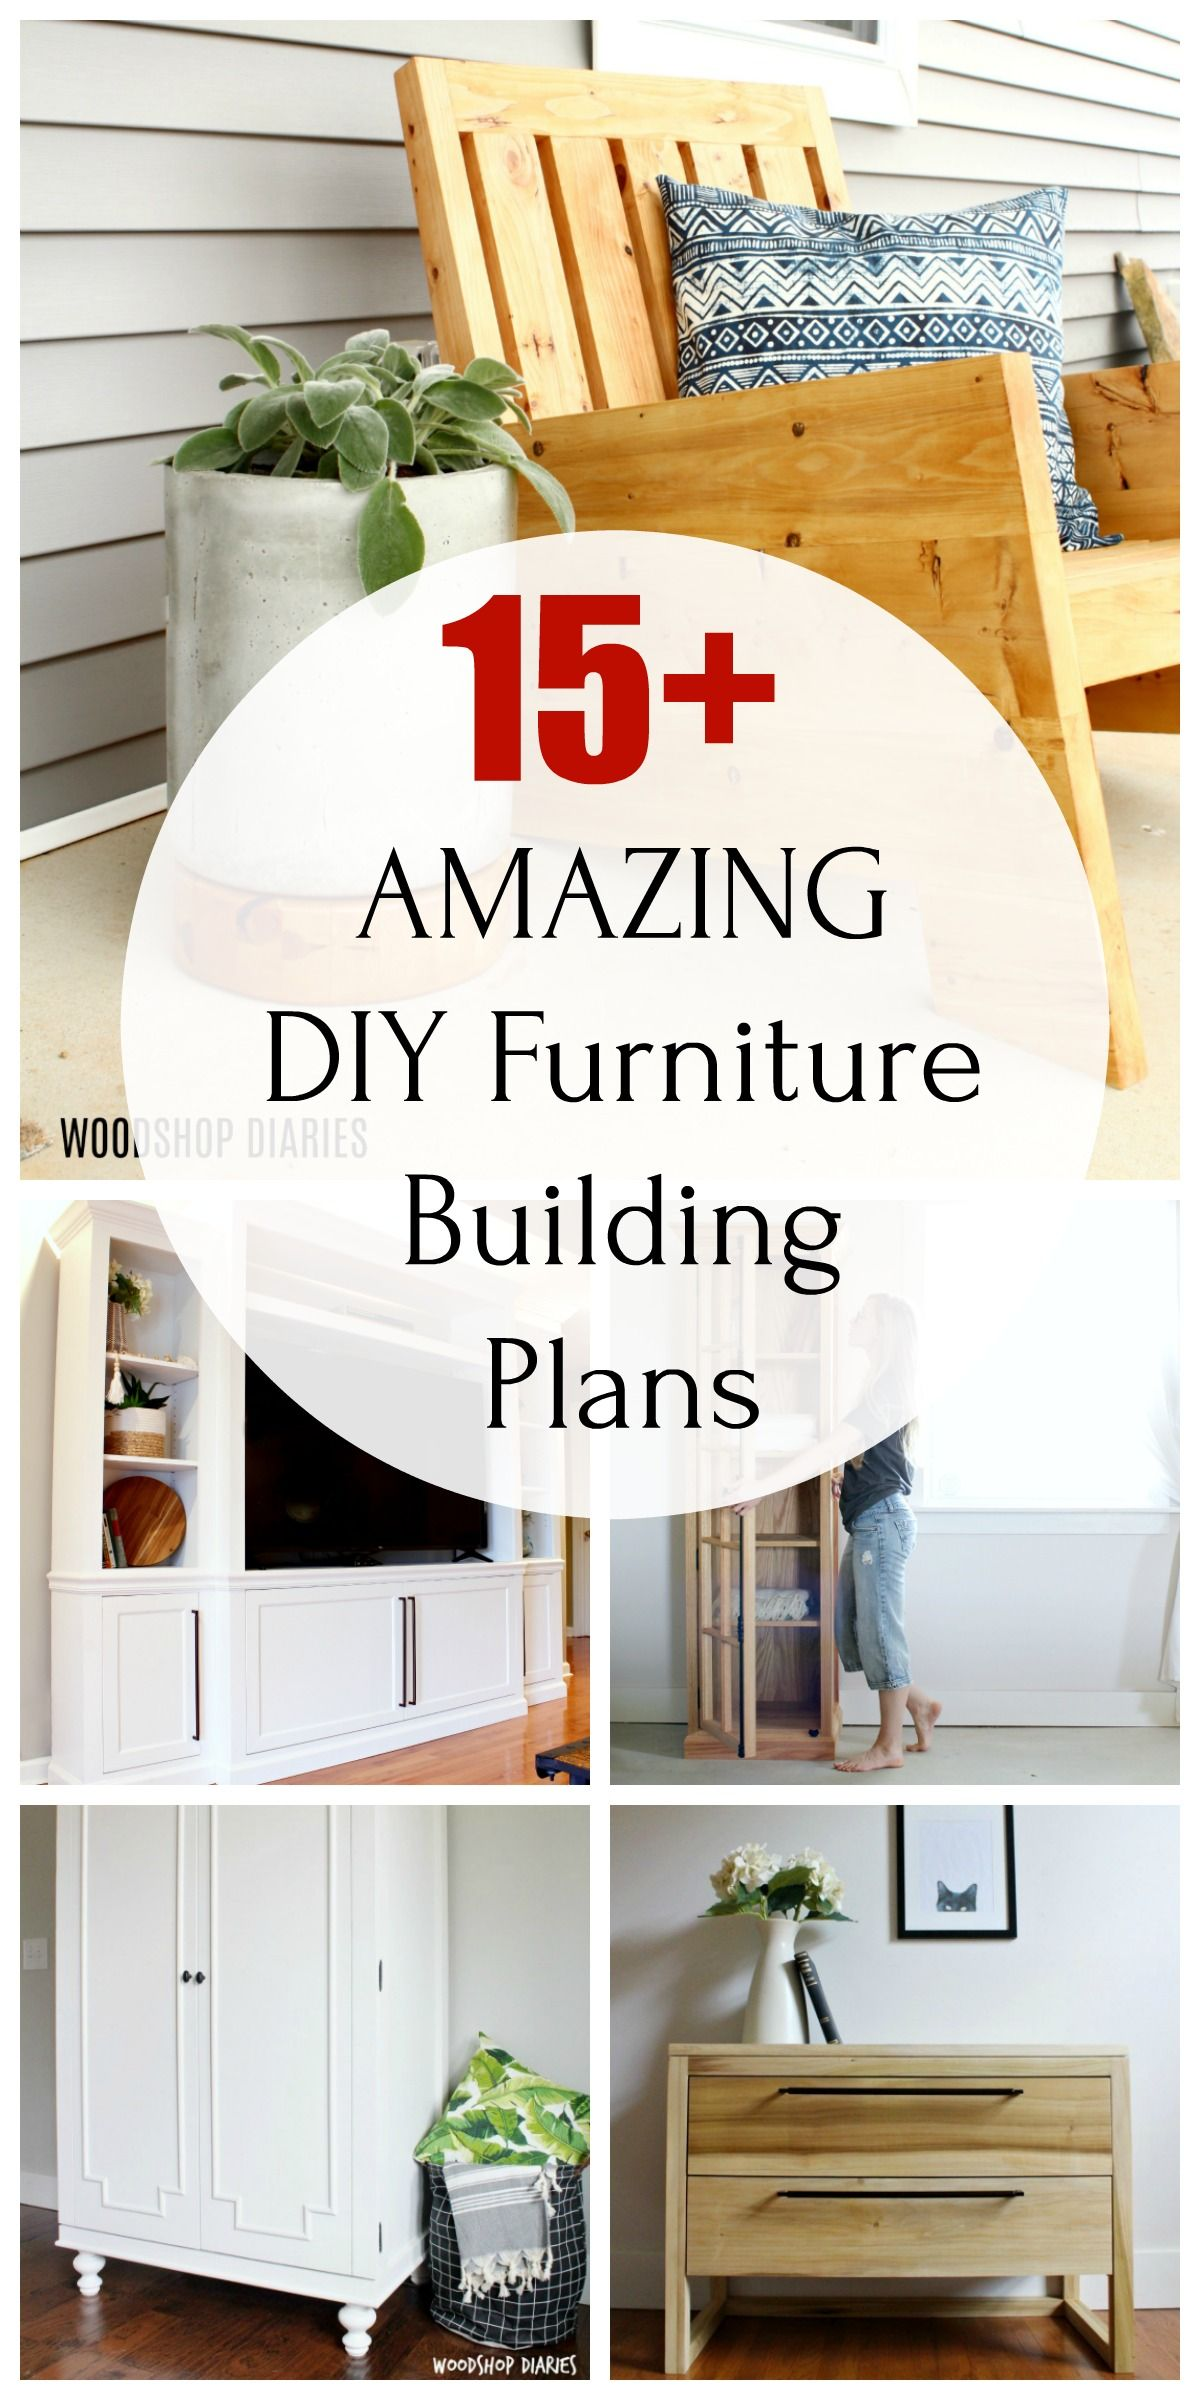 Printable DIY Furniture Building Plans in 2020 Diy